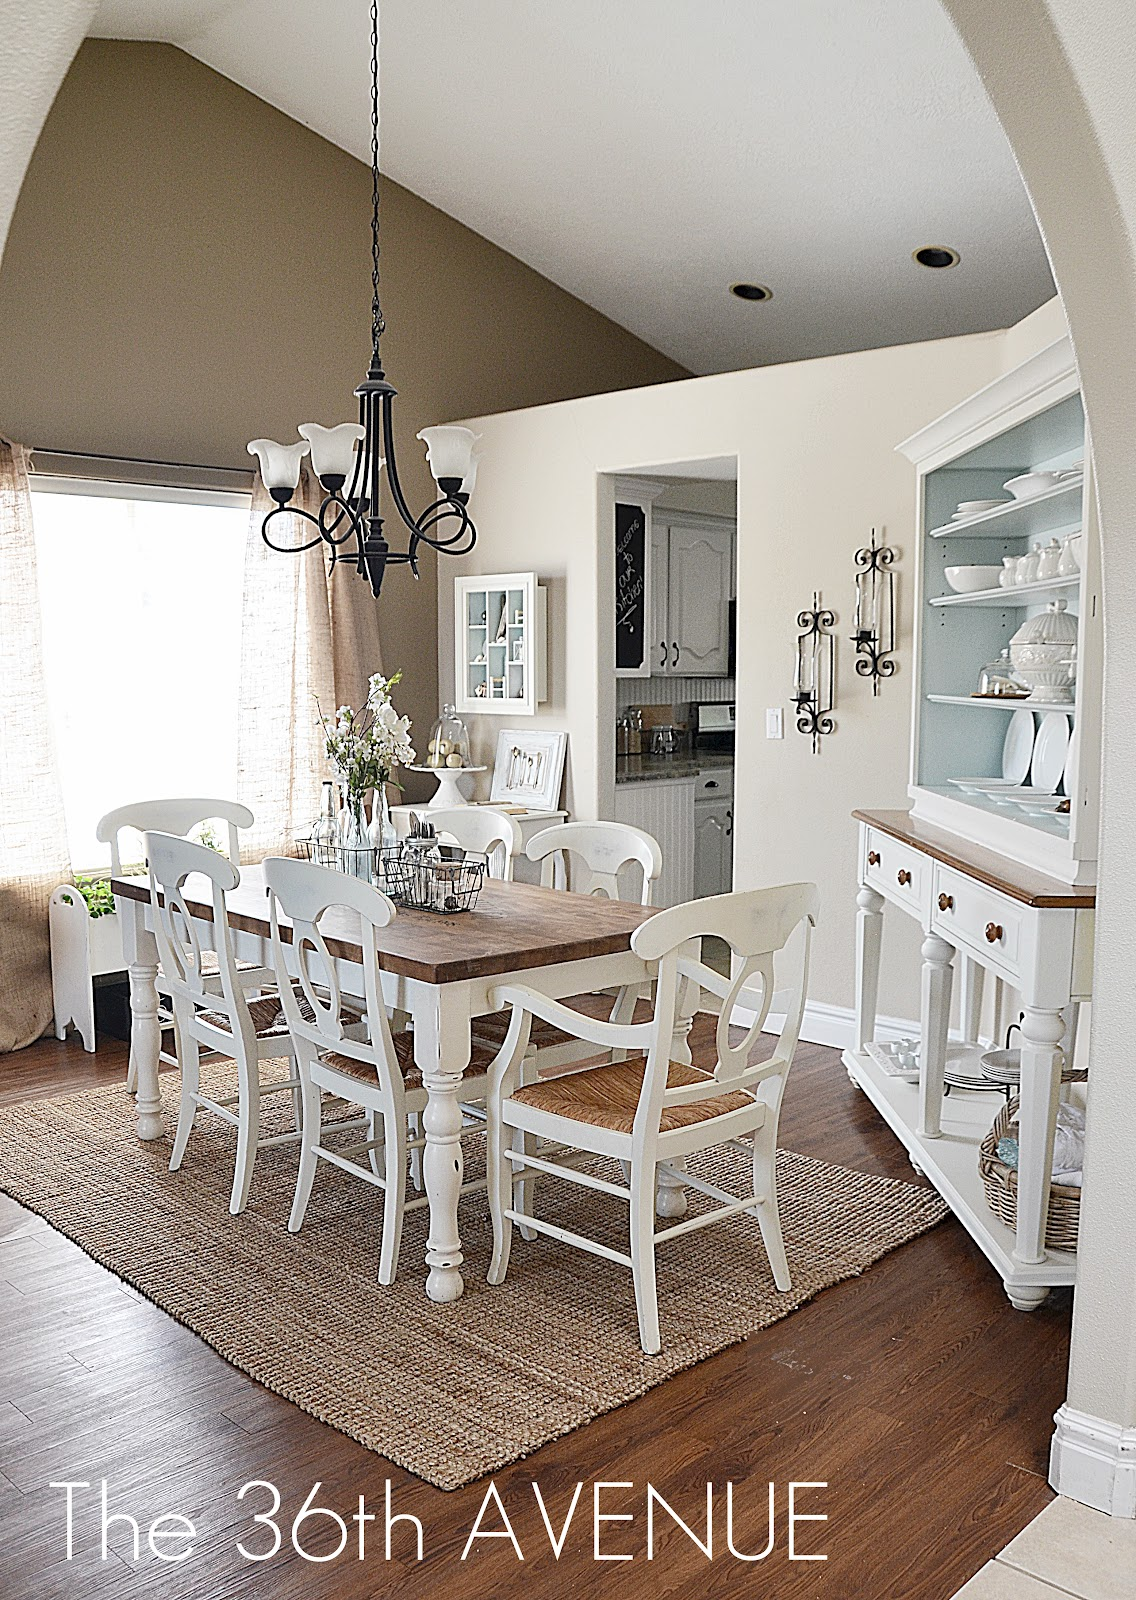 Home Decorators Collection » thrifty home decorating blogs | Home ...